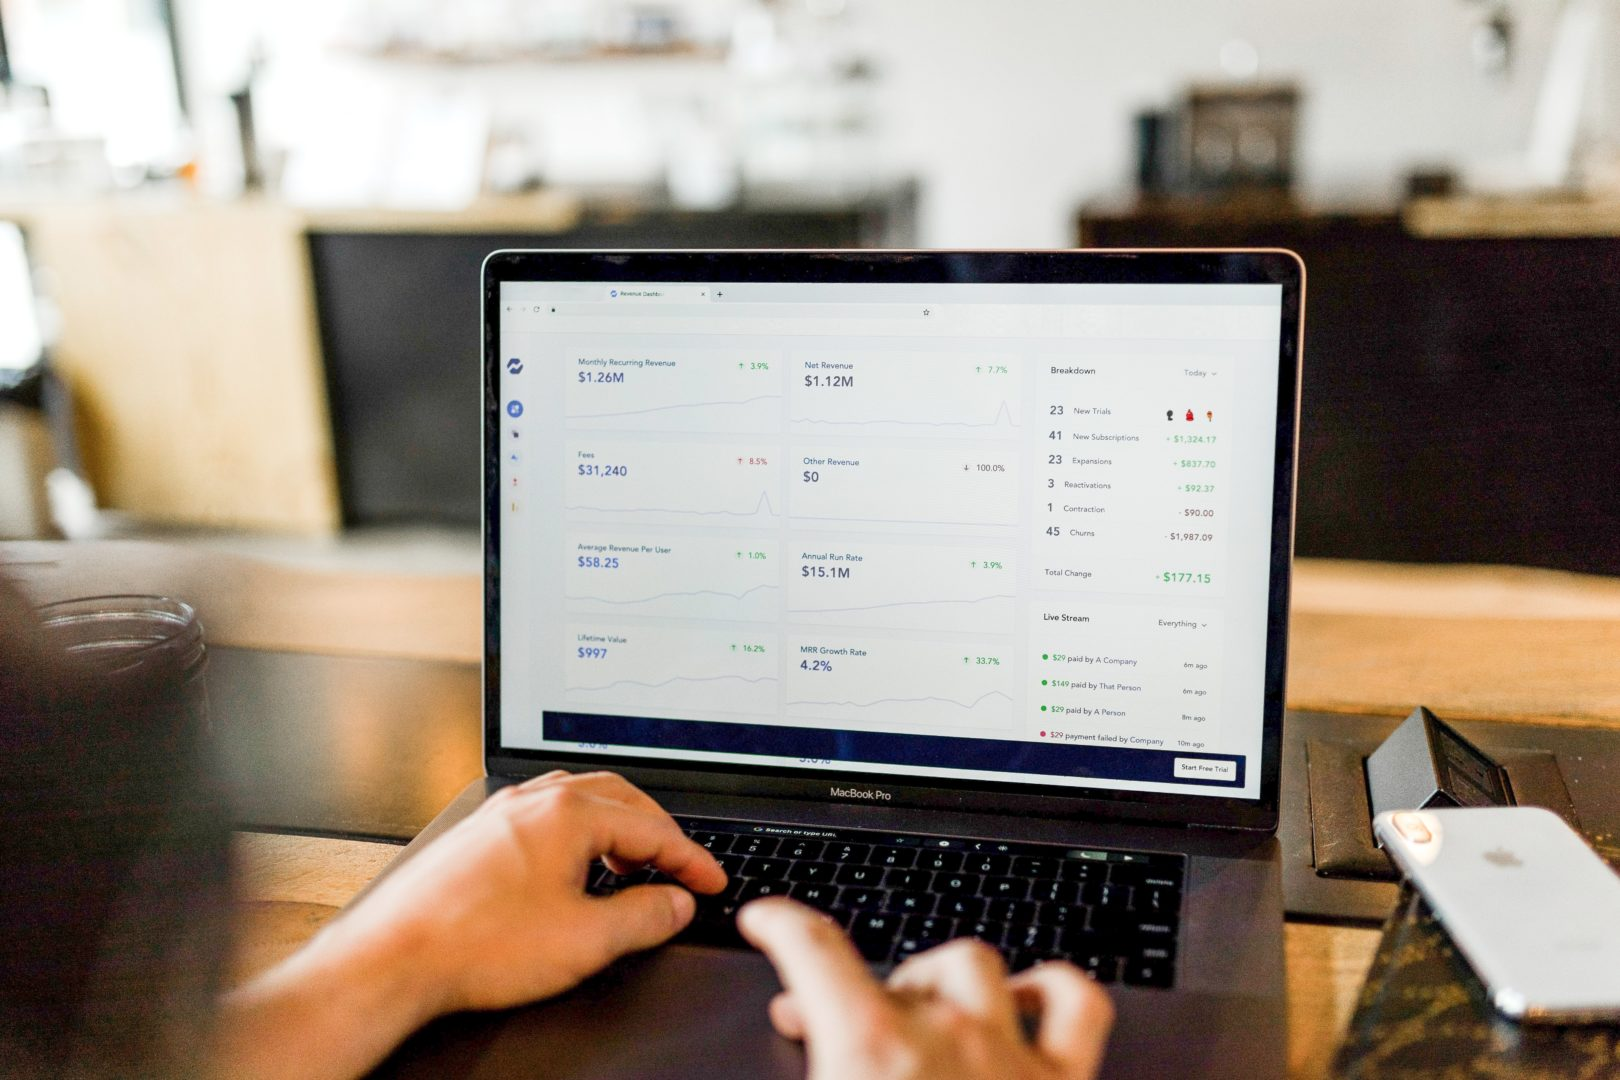 Computer screen with revenue reporting - revenue you could be making if you monetized your content